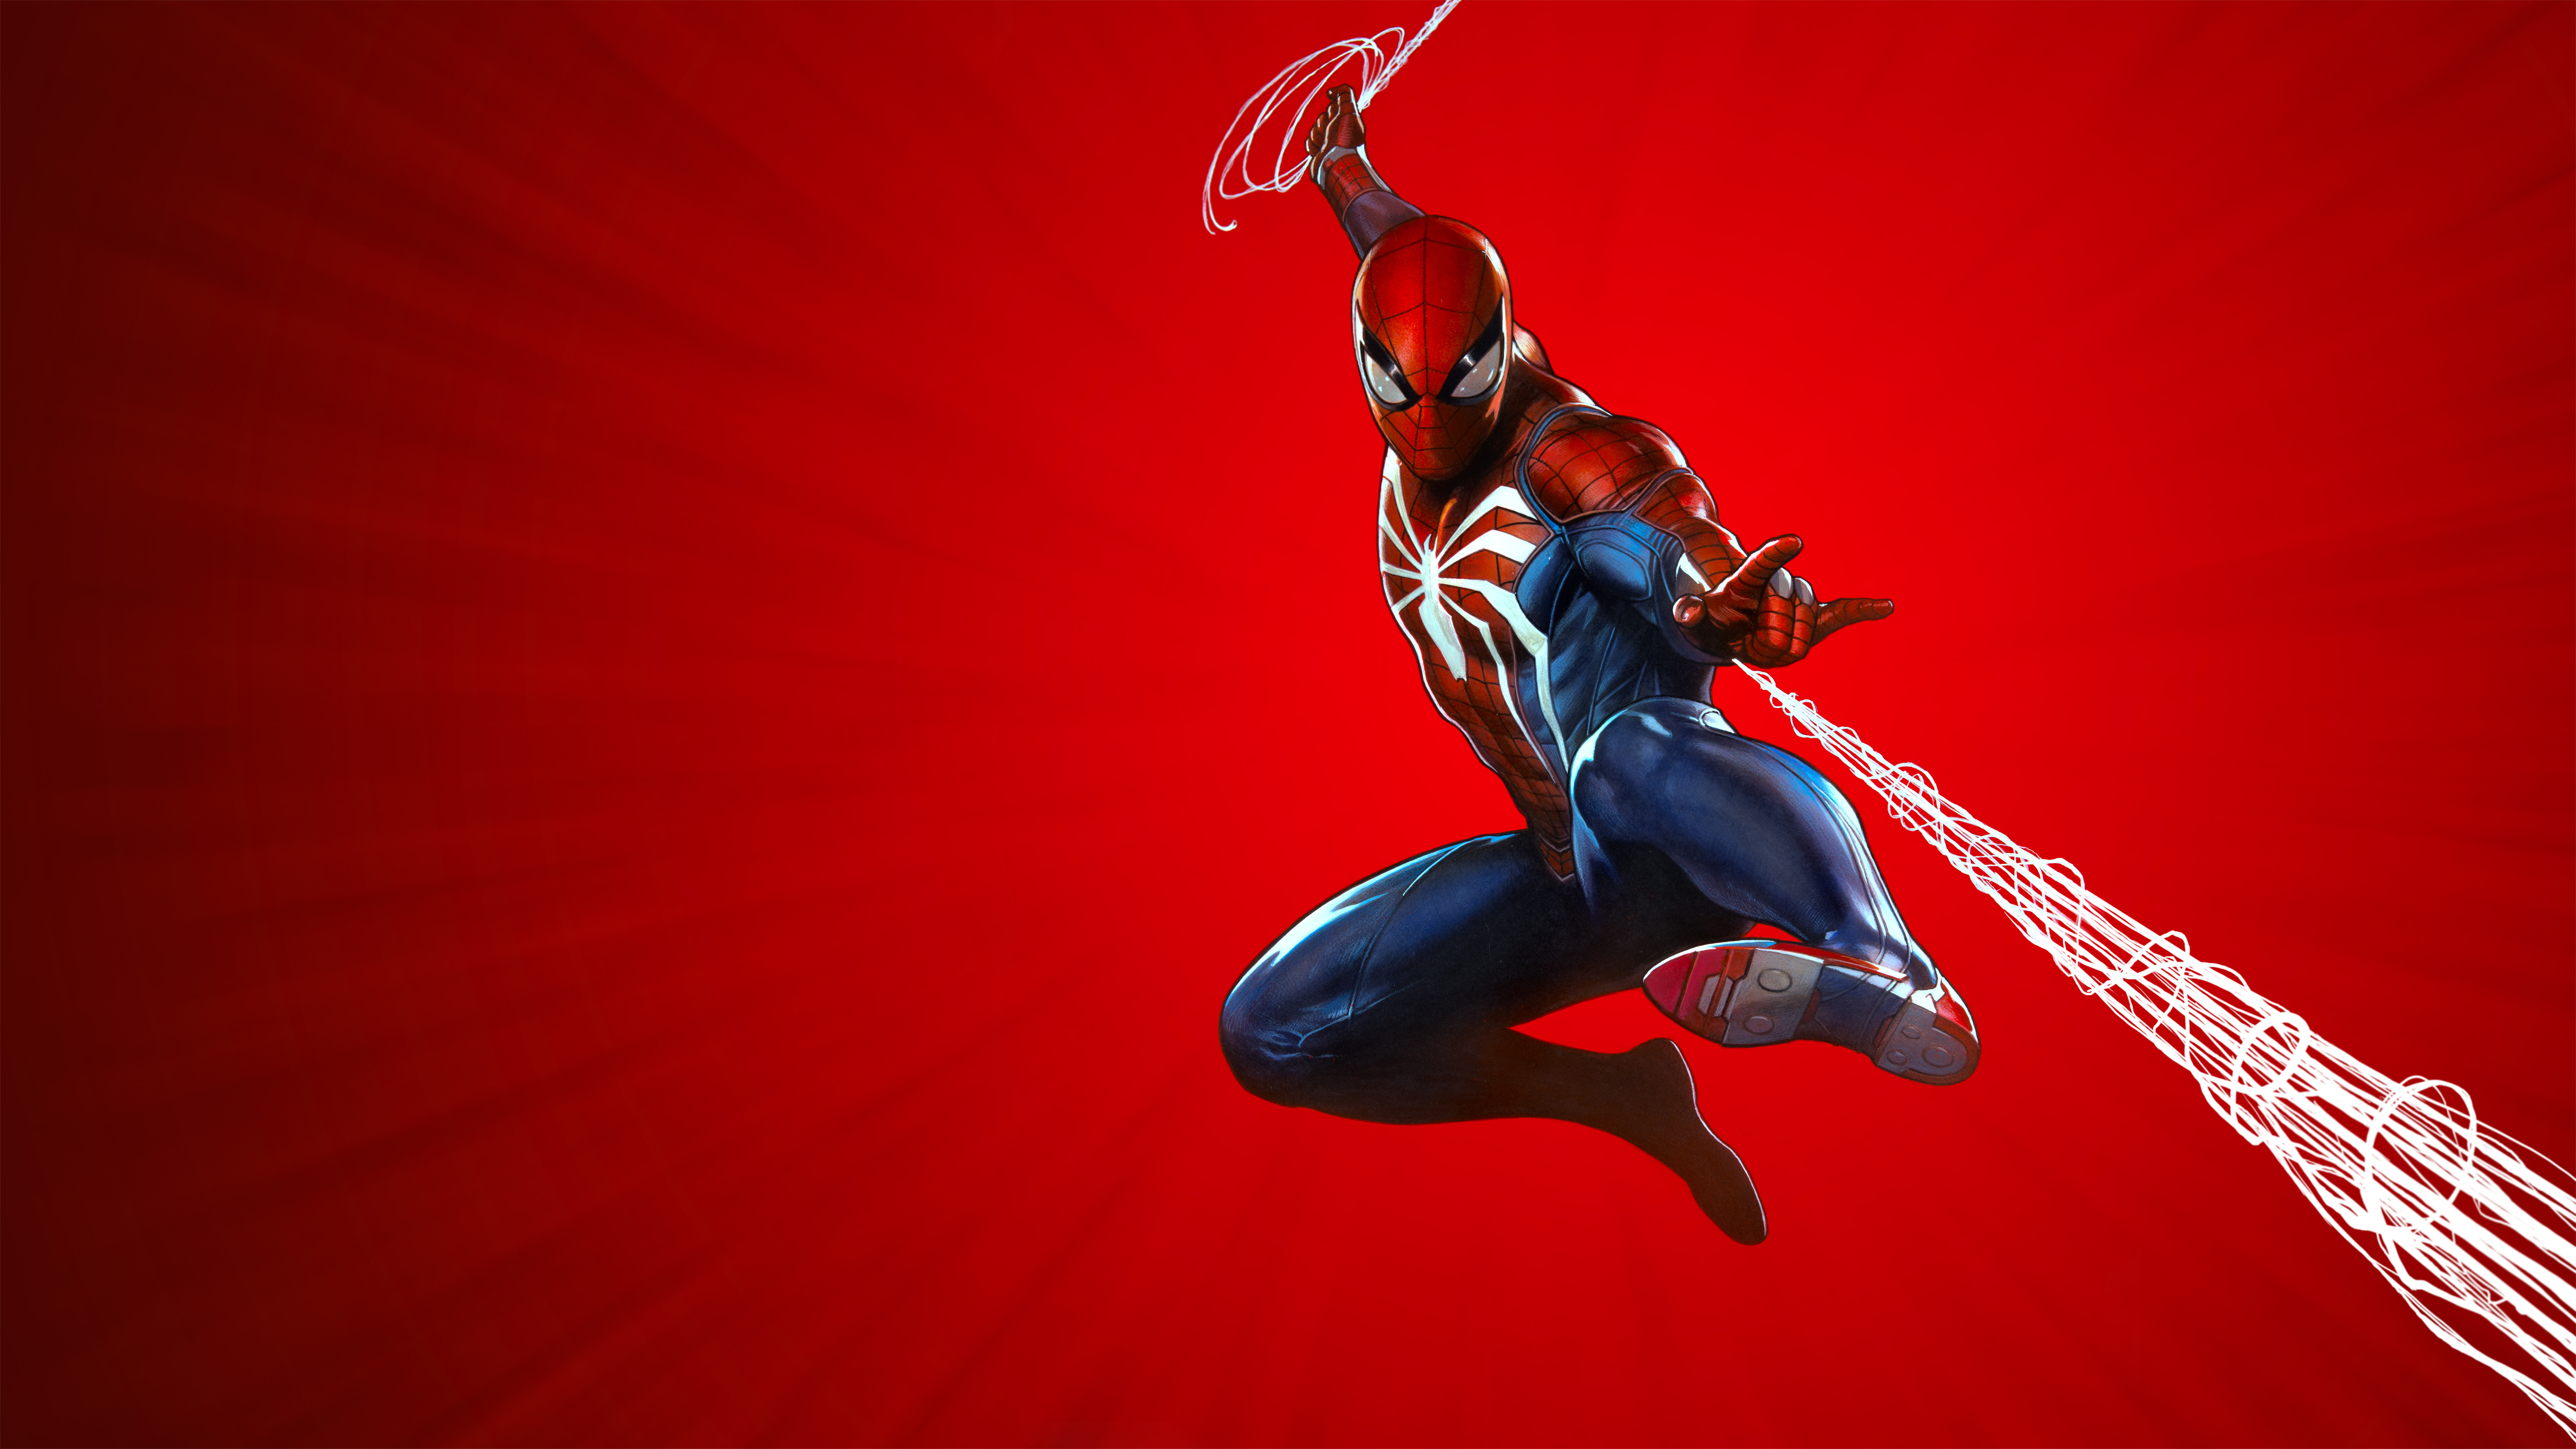 Spider Man Ps4 8k Ultra Fondo De Pantalla Hd Fondo De